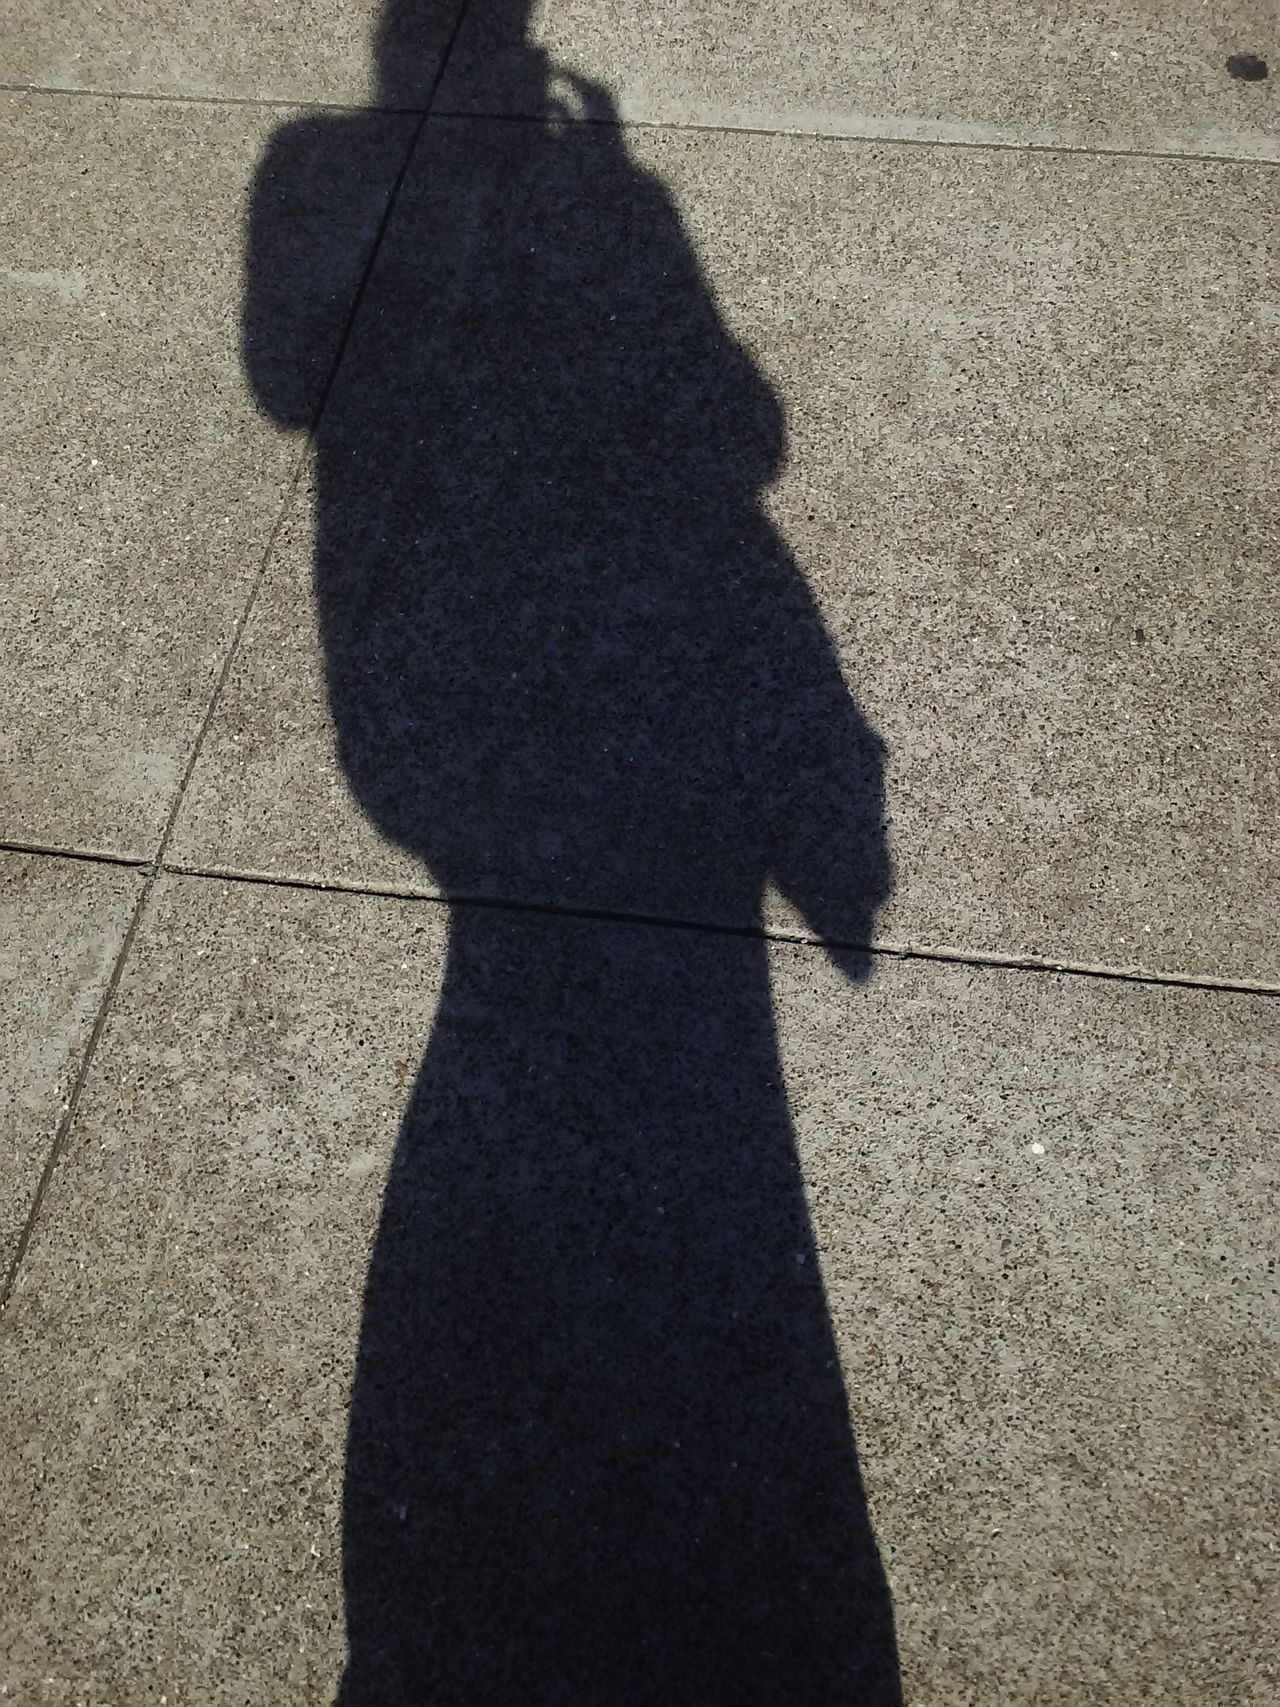 Shadows & Lights Shadow Of A Girl... City Life Hipstergirl Hippykid Kreatives Shadow Selfie Ground Cement Sidewalk Perspectiveporn Creativity Perspectivephotography Posttraumatic Pictures Charlotte Pulling Hippykidkreatives San Francisco Potrero♡